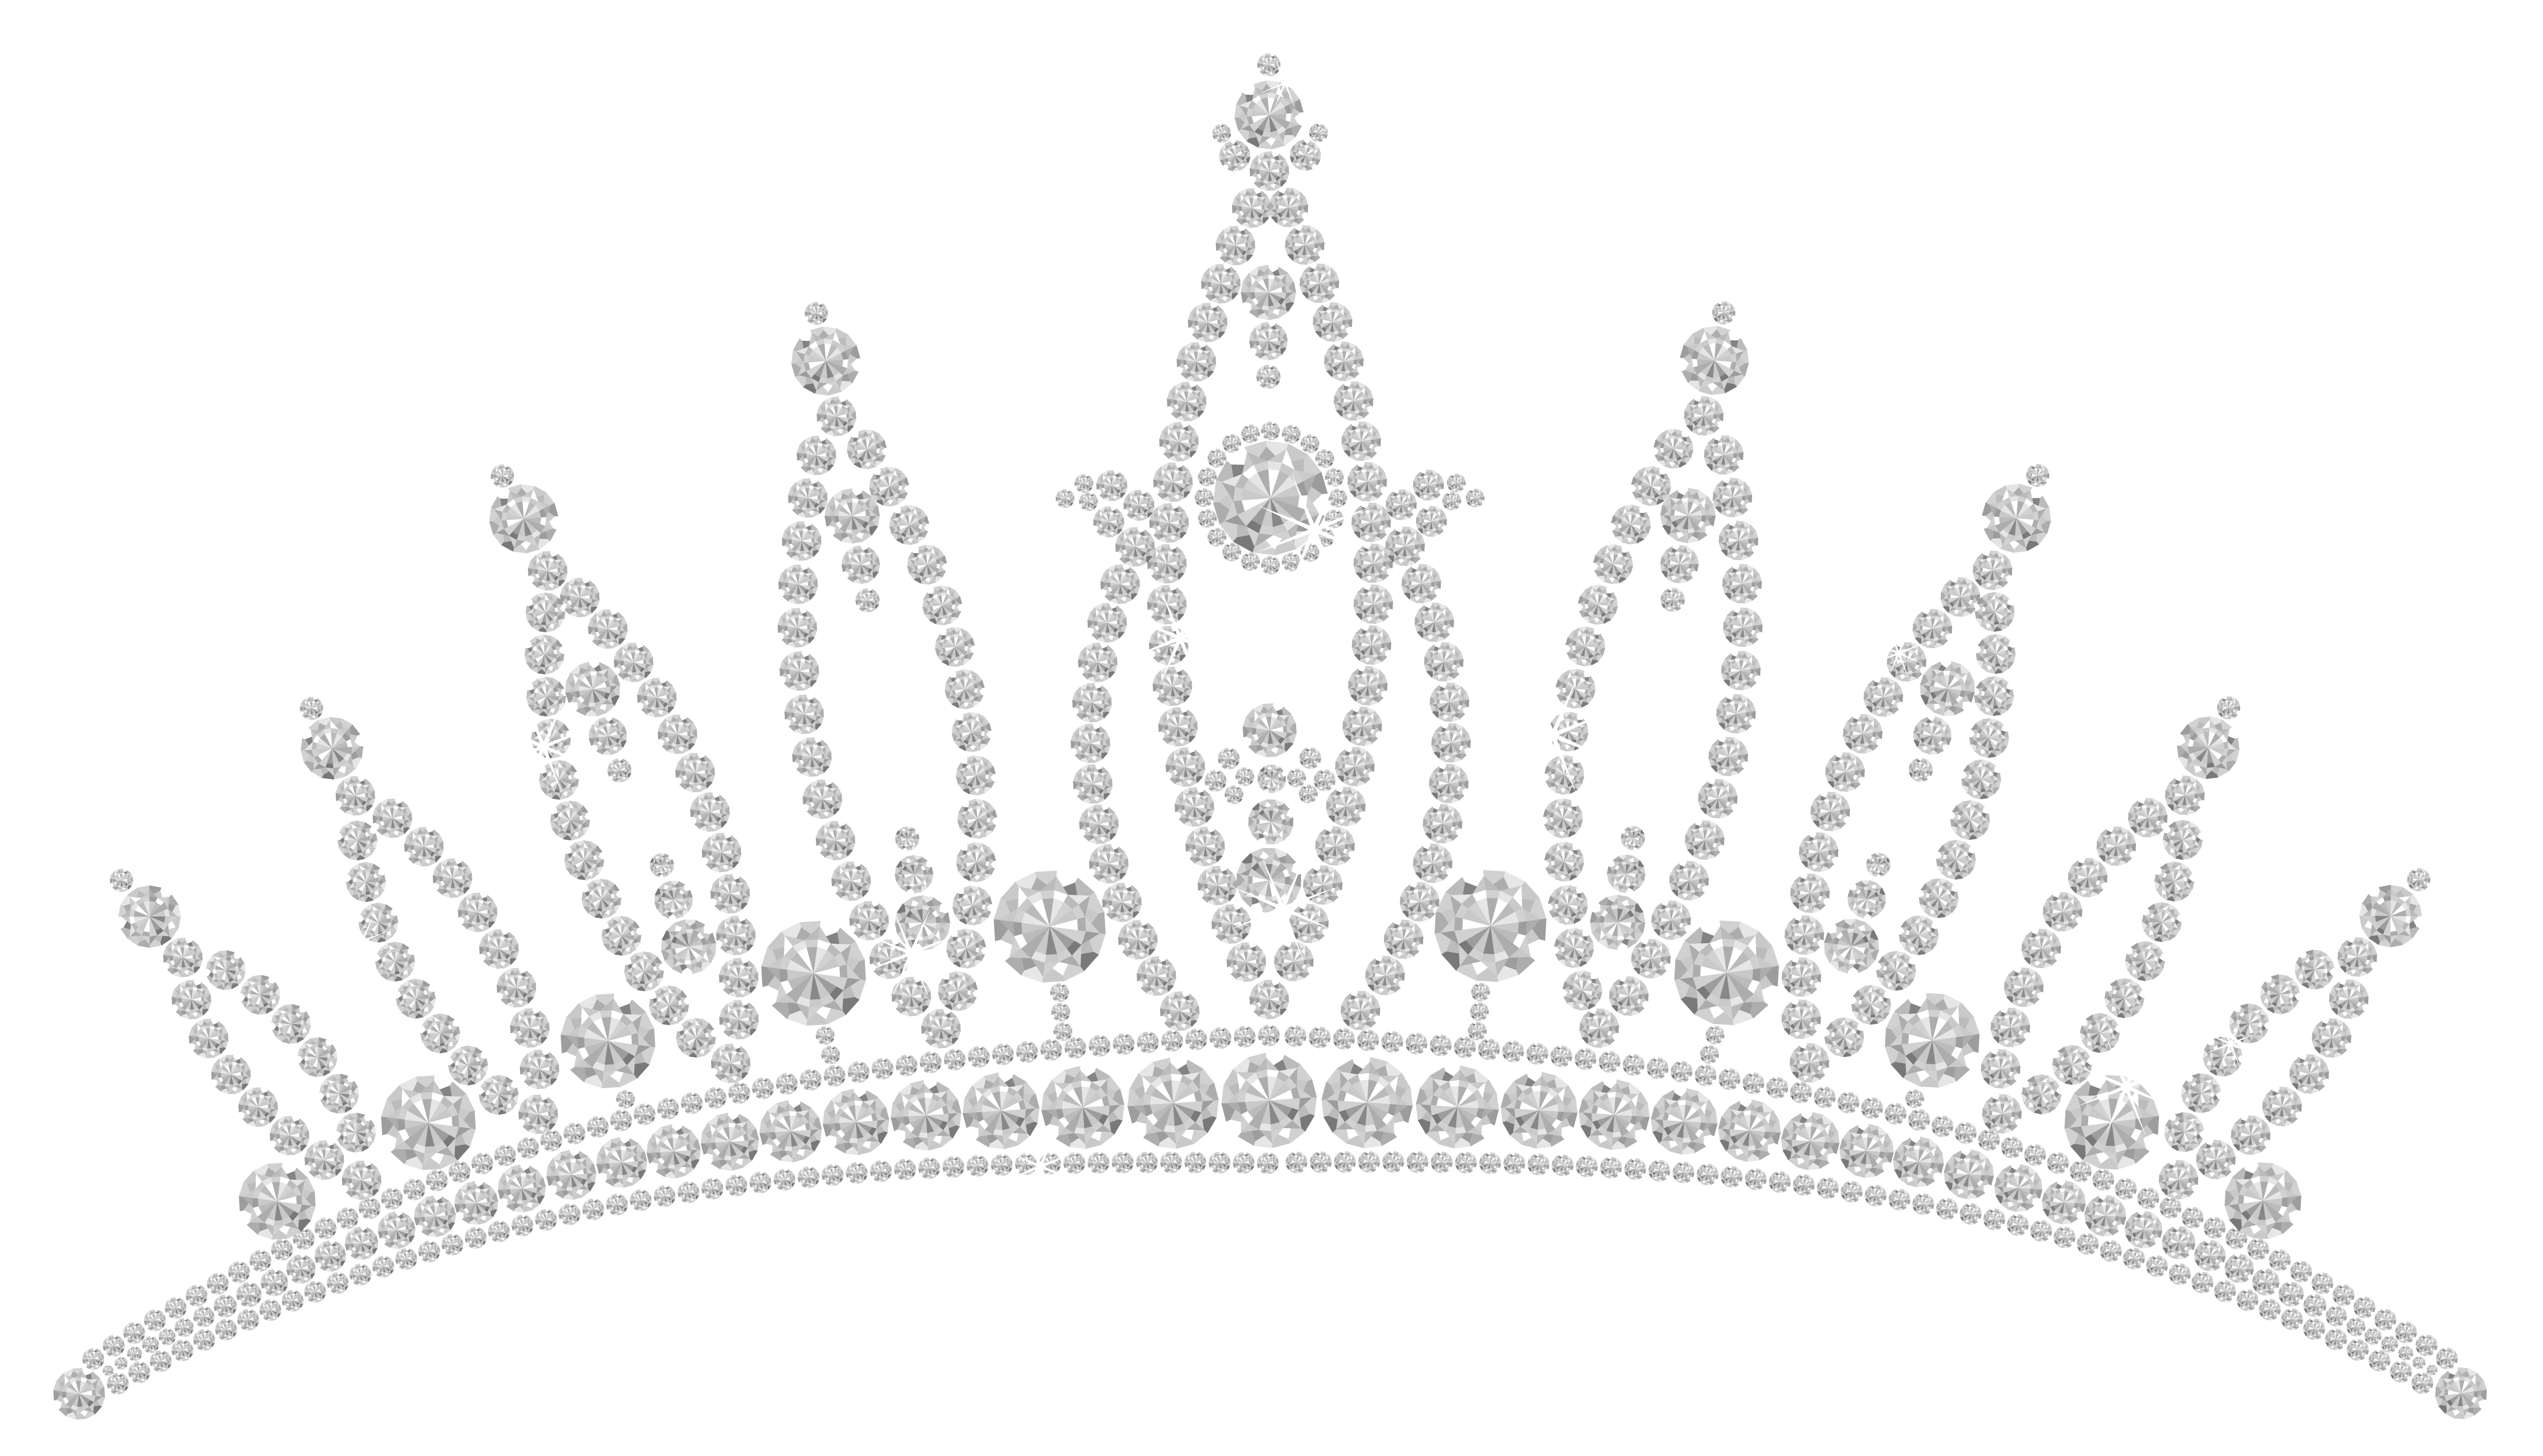 Tiara clipart transparent graphic download Diamond Tiara PNG Clipart Picture | Gallery Yopriceville ... graphic download